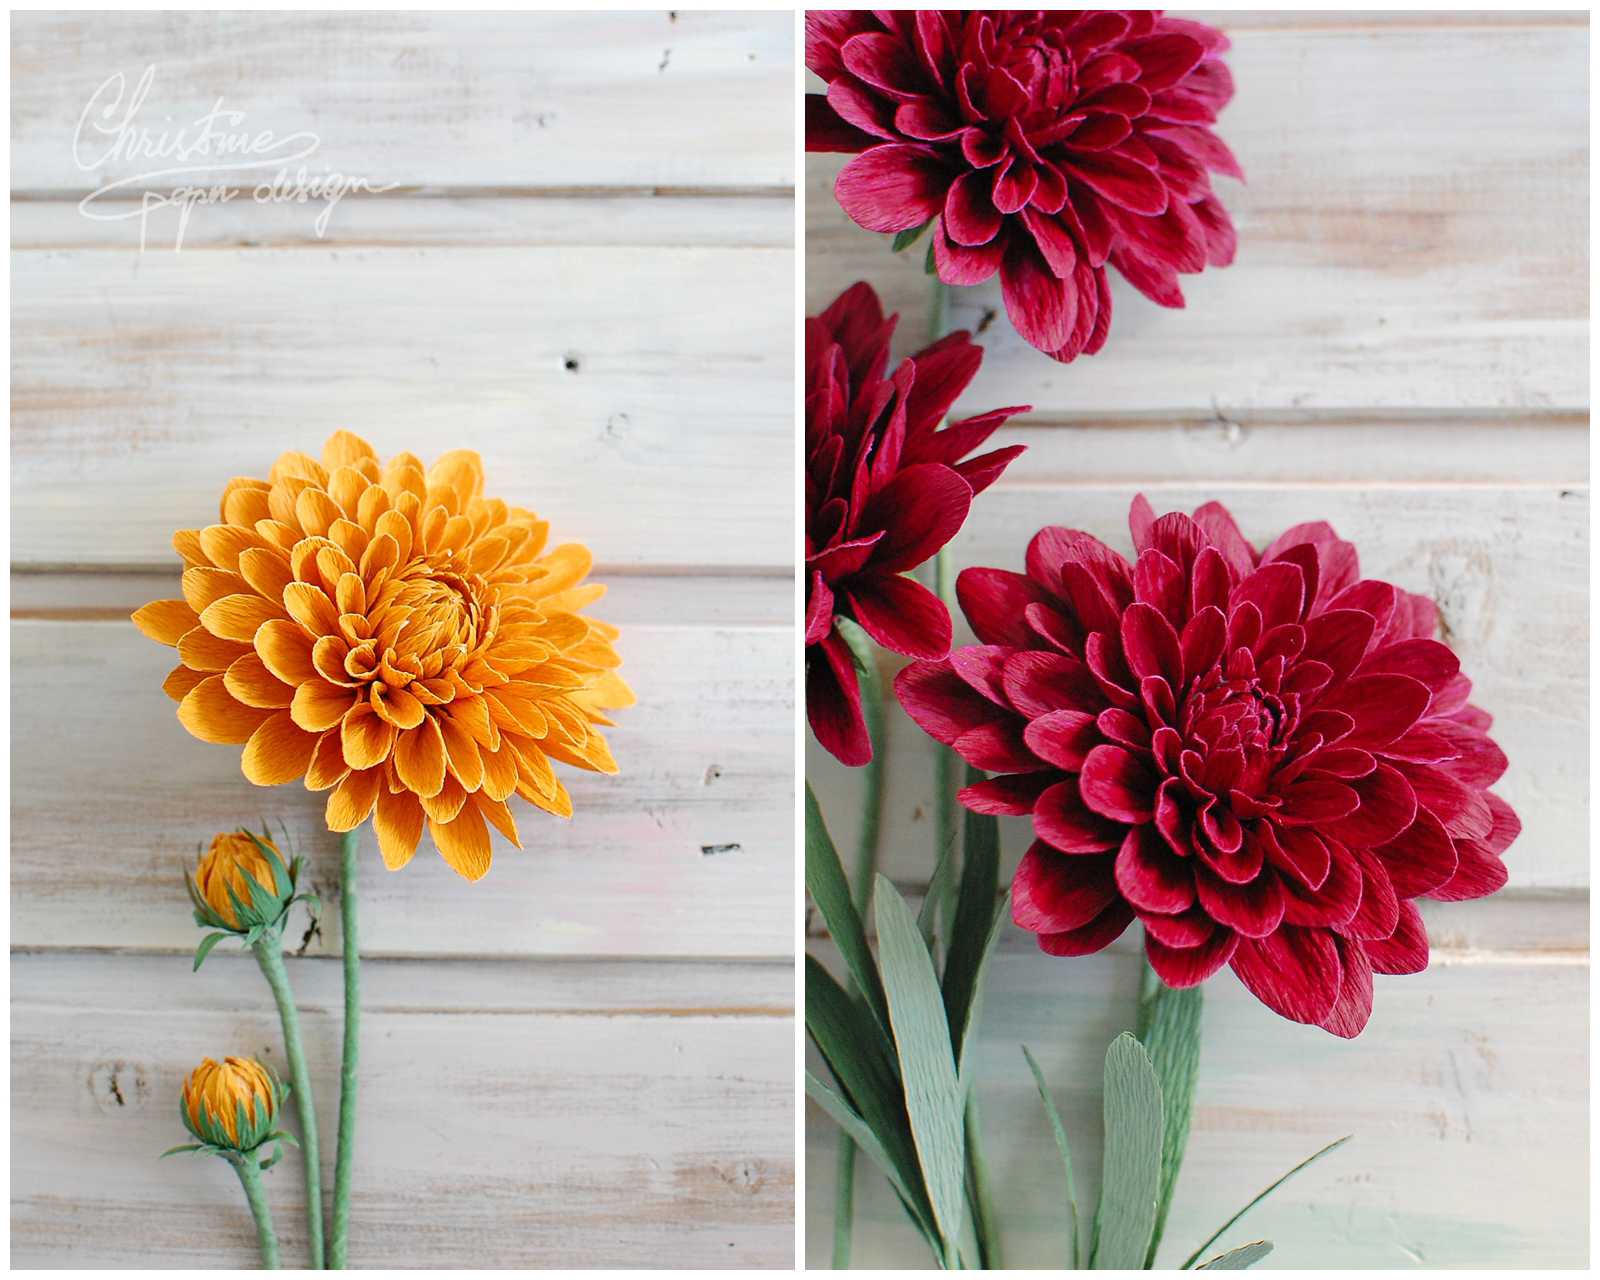 dahlias by Christinepaperdesign